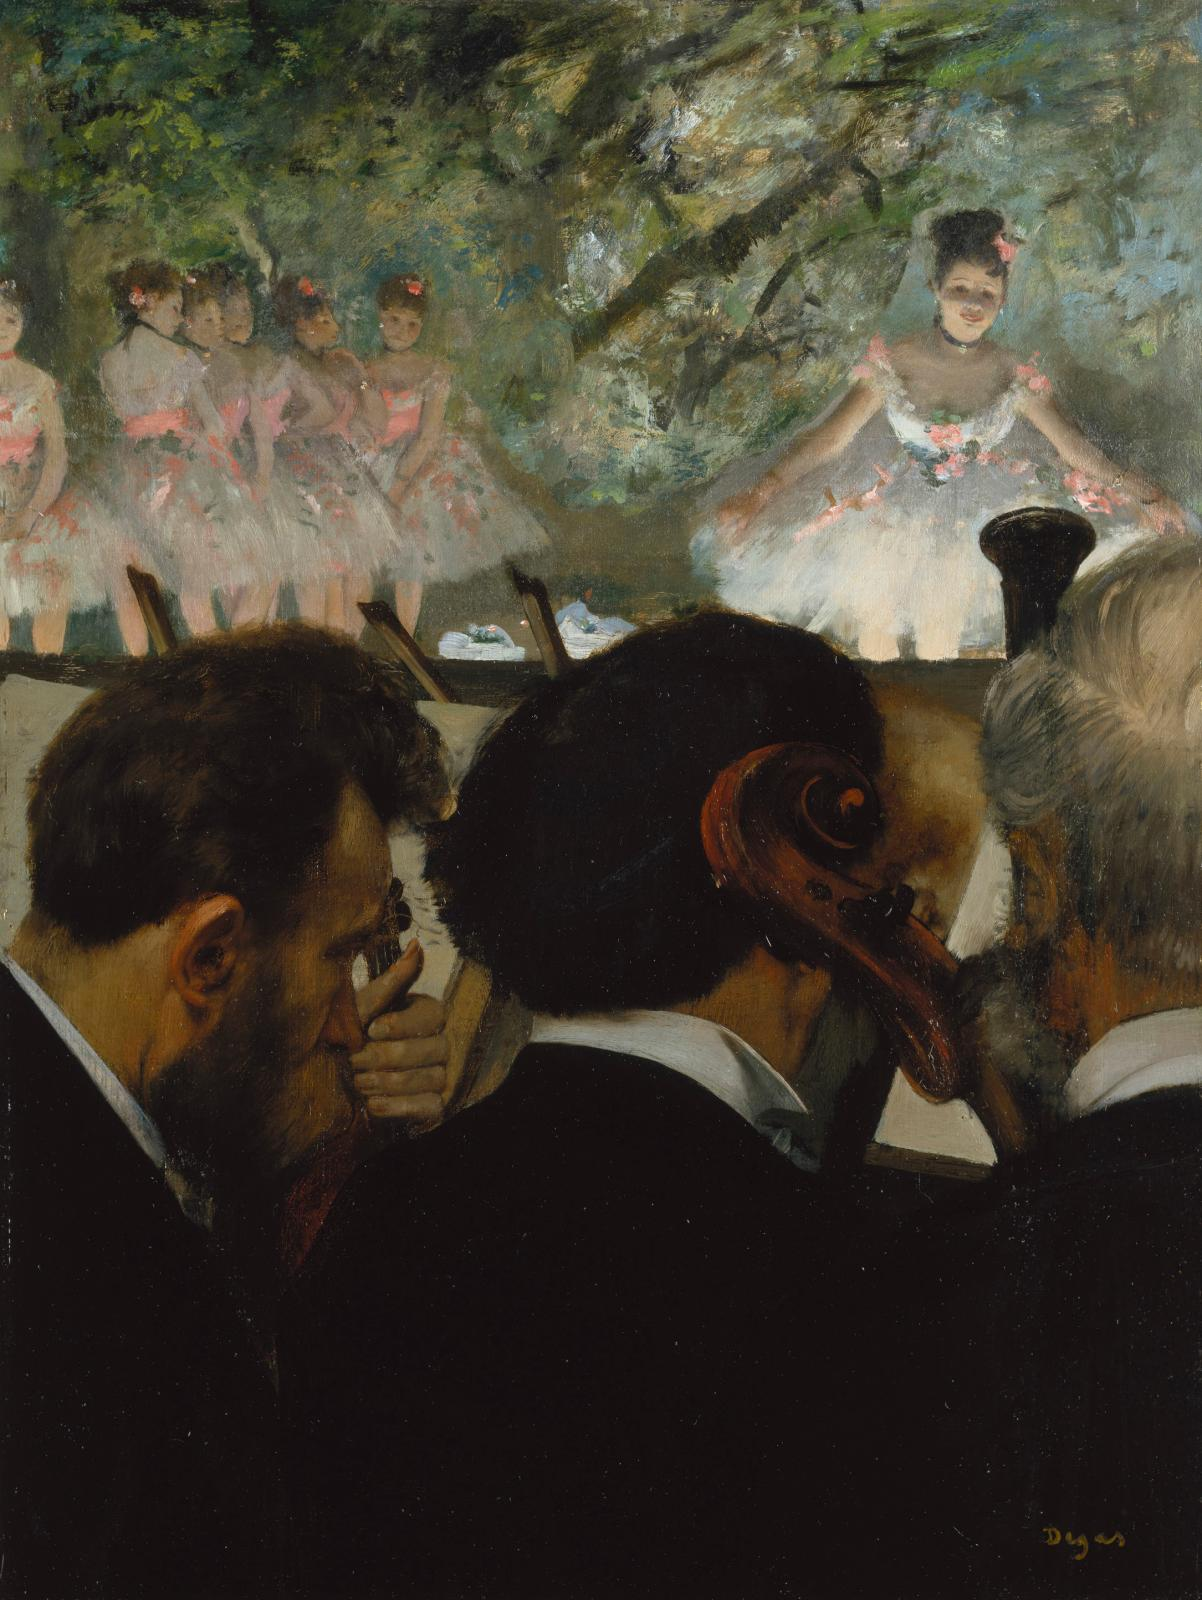 Musiciens à l'orchestre (Musicians in the Orchestra), 1872-76, oil on canvas, Frankfurt am Main, Städel Museum.© STADEL MUSEUM- ARTOTHEK